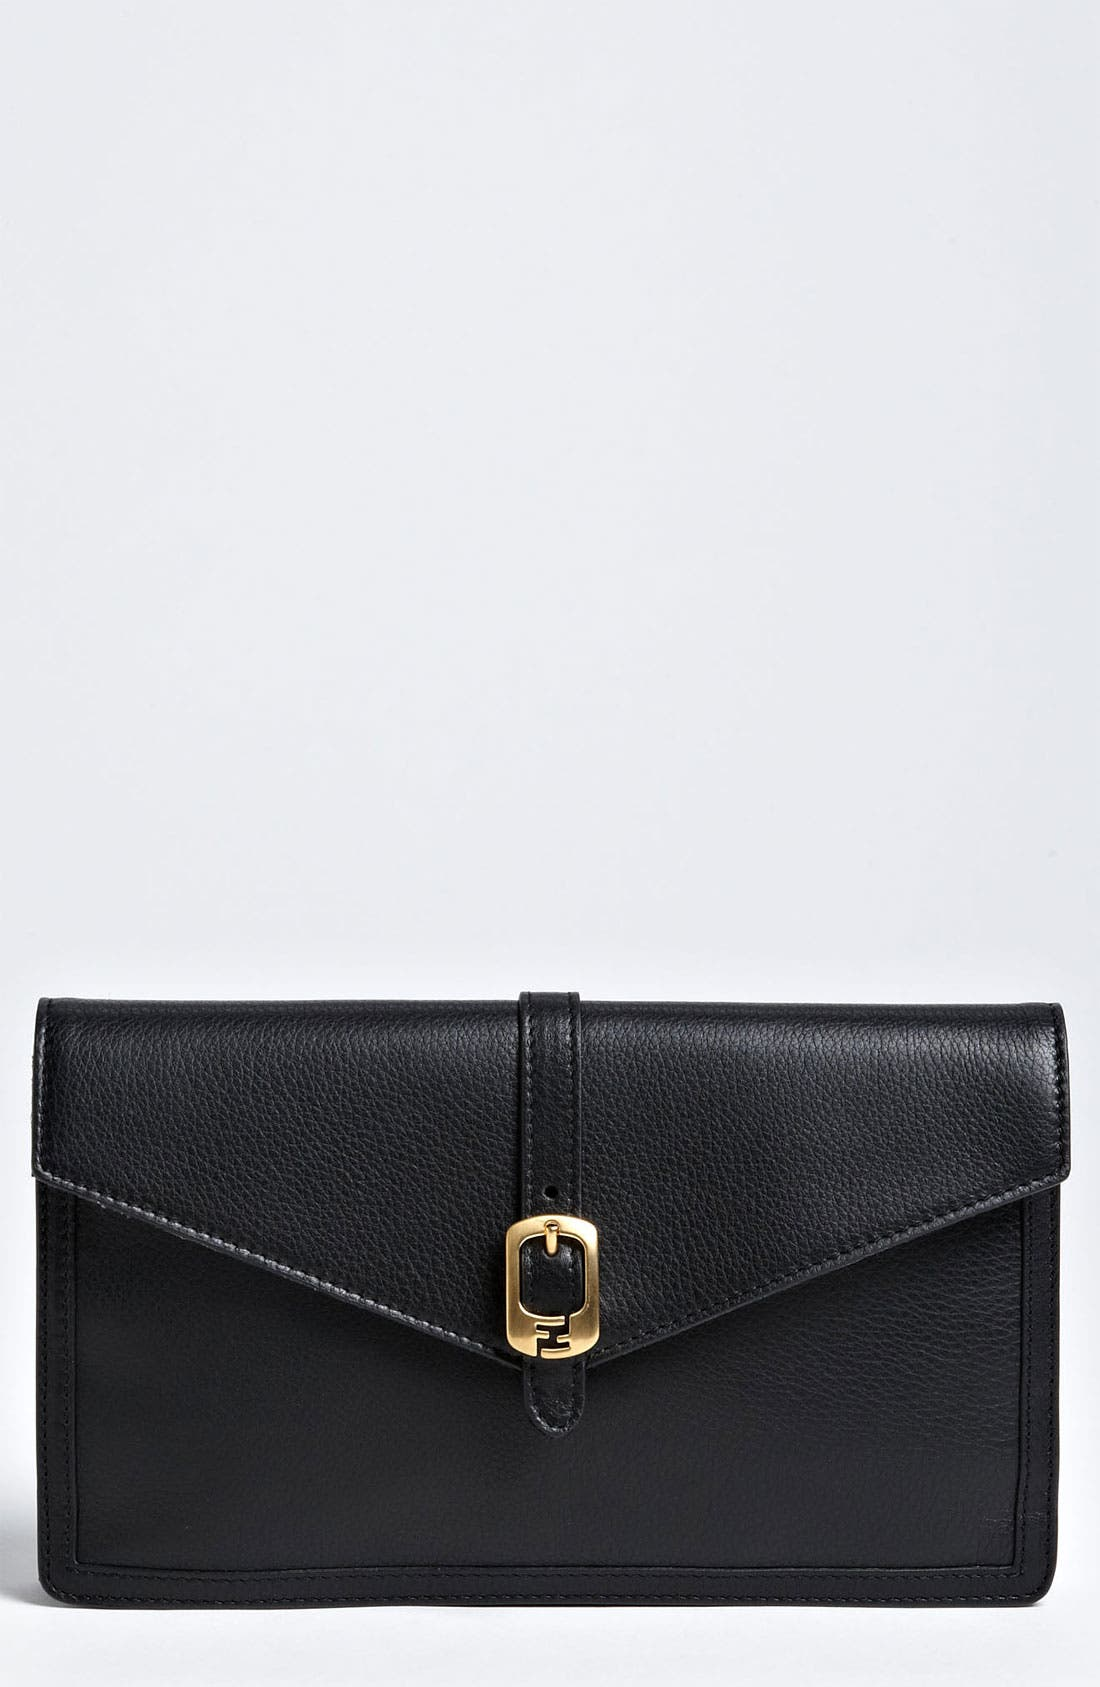 Main Image - Fendi Leather Envelope Clutch